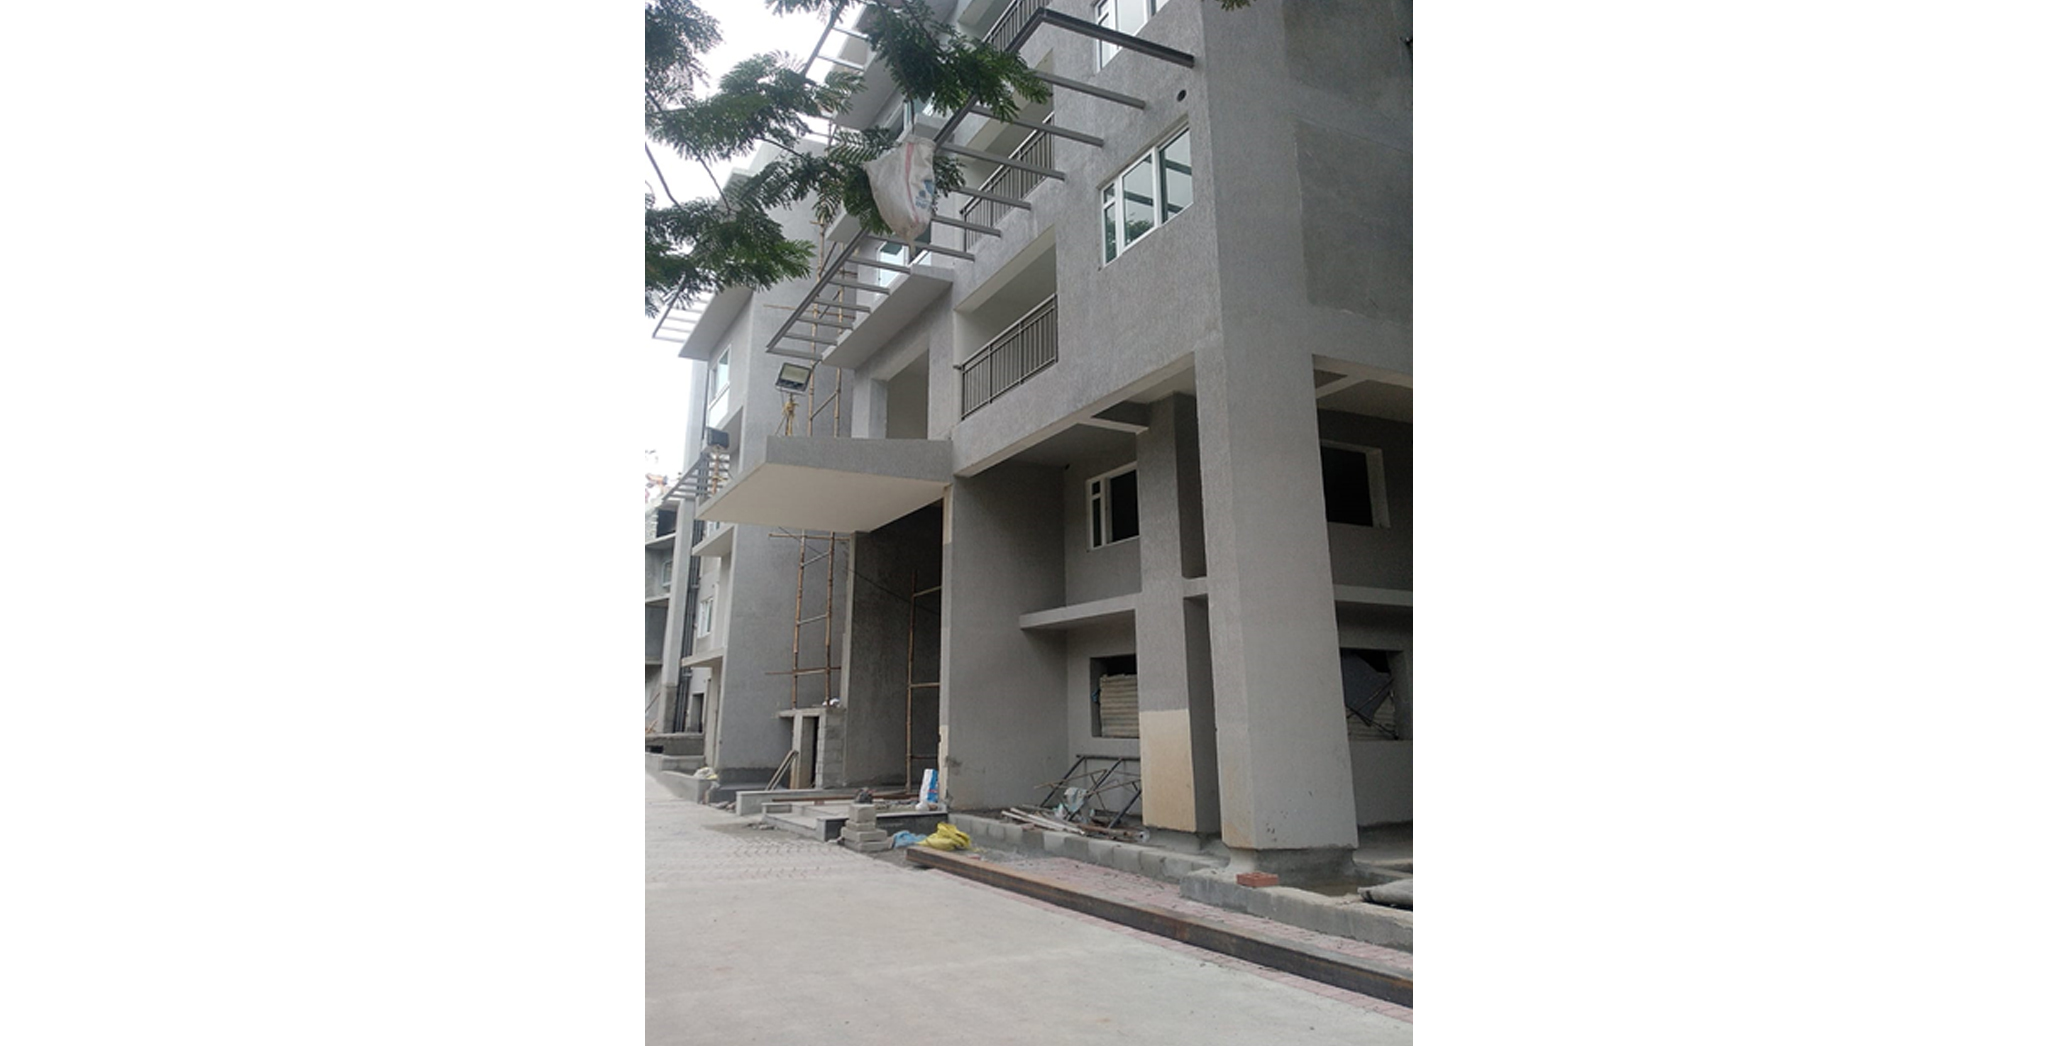 Aug 2021 - G Block: External Painting North & South Elevation in progress